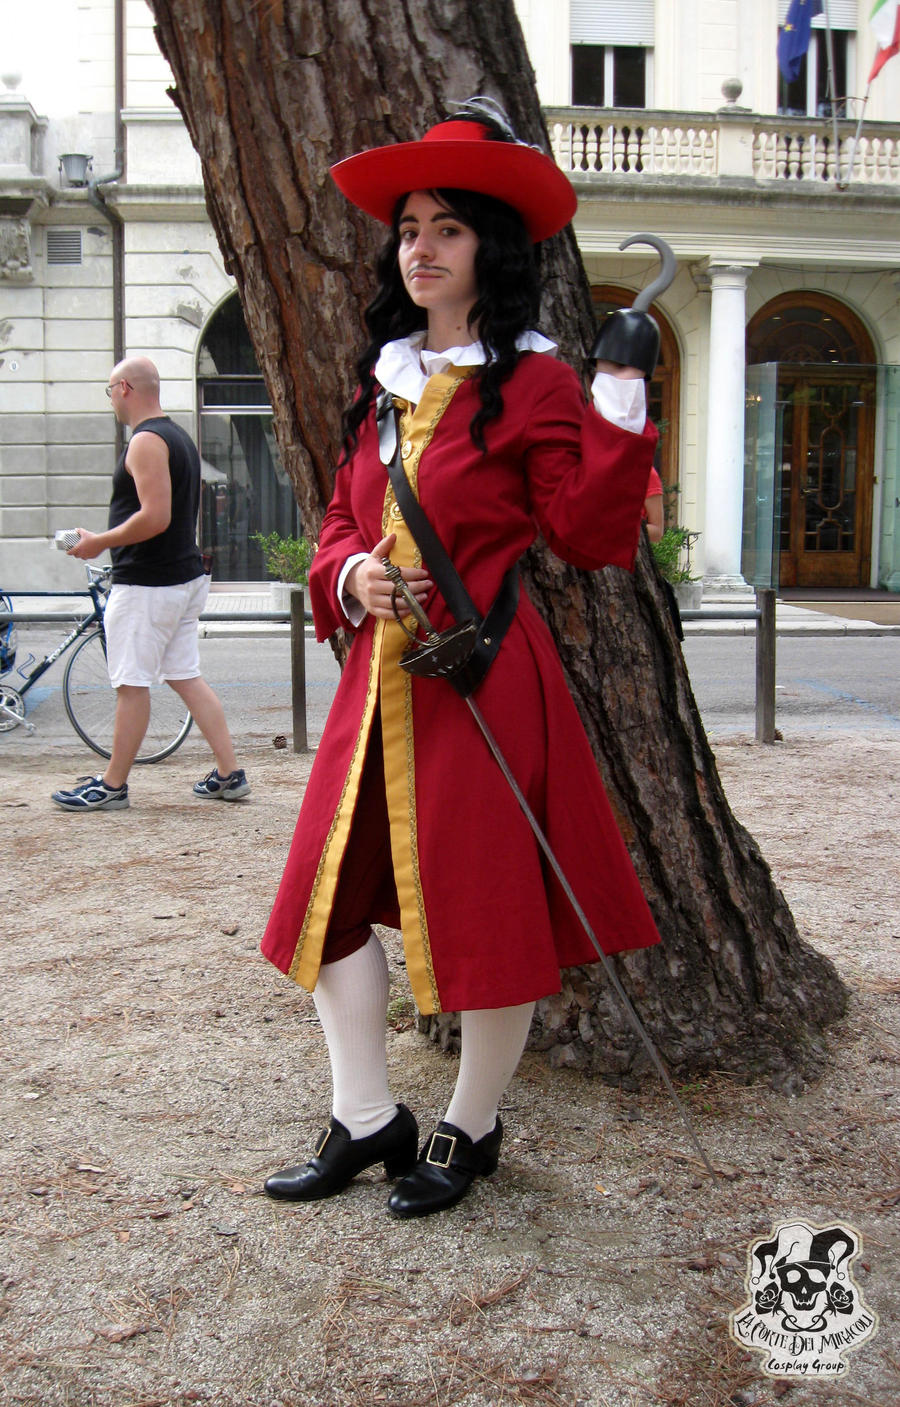 Captain Hook by MiracoliCosplay on DeviantArt